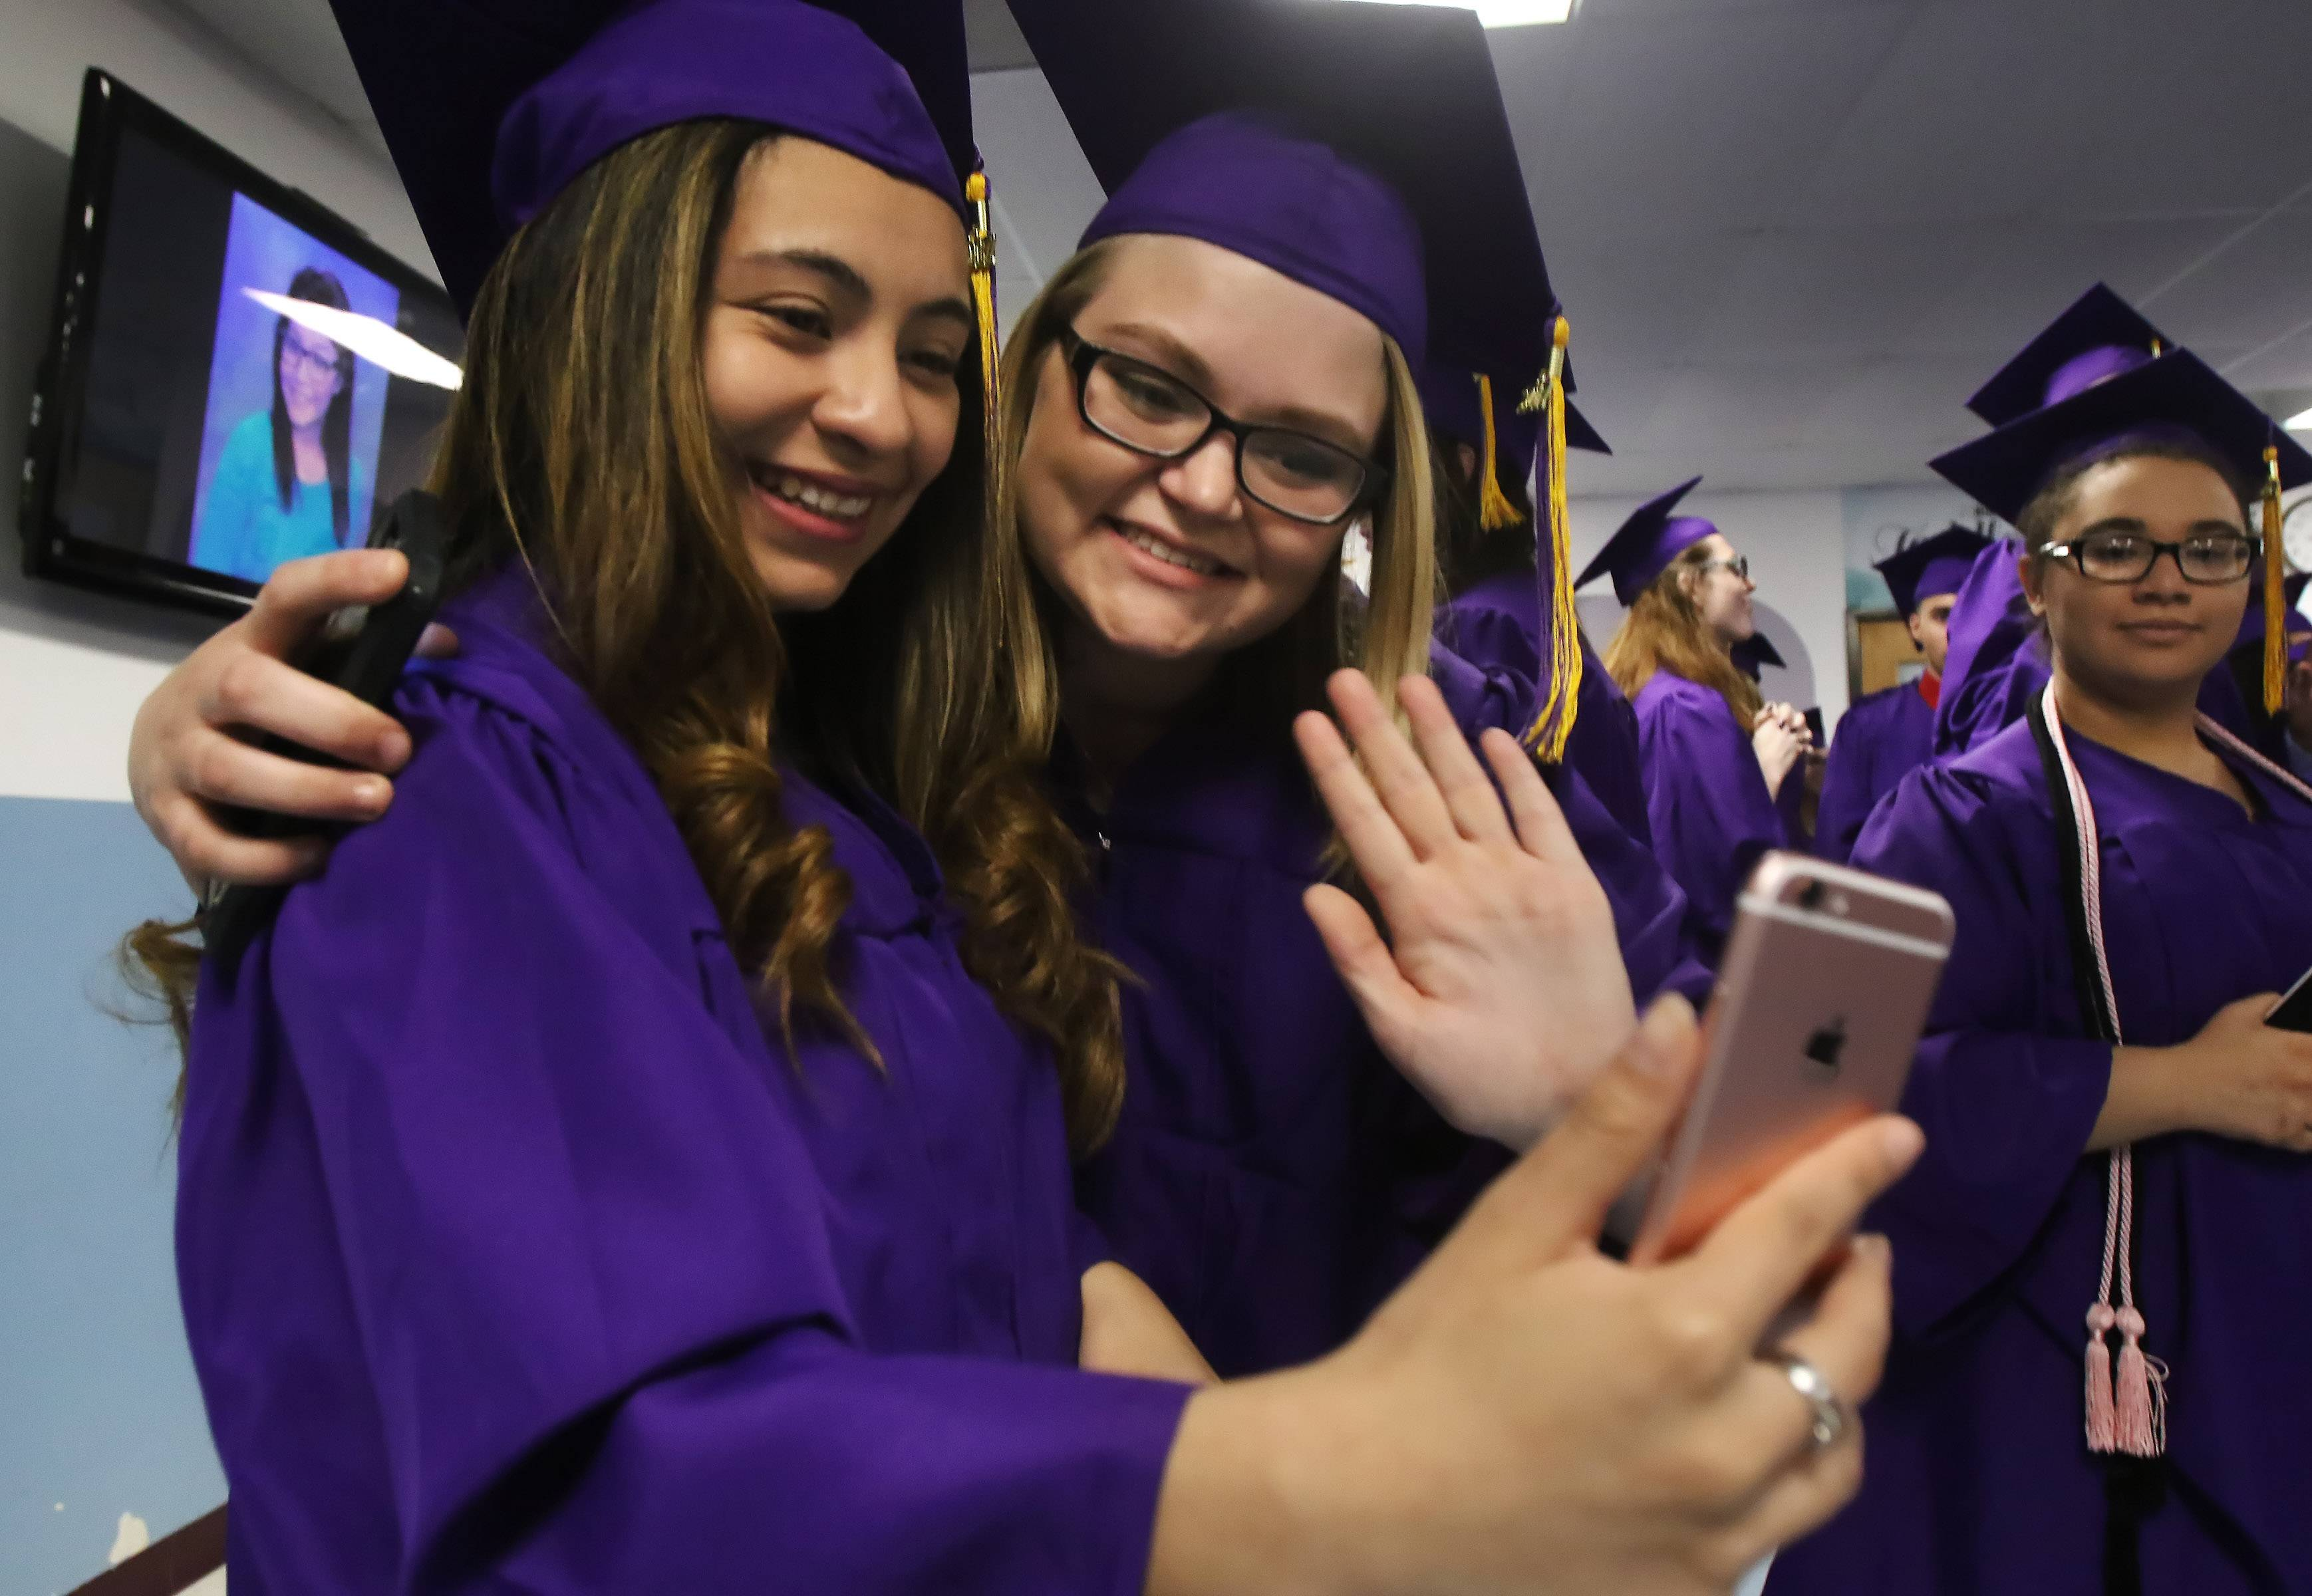 Wauconda High graduation ceremony likely to stay at church